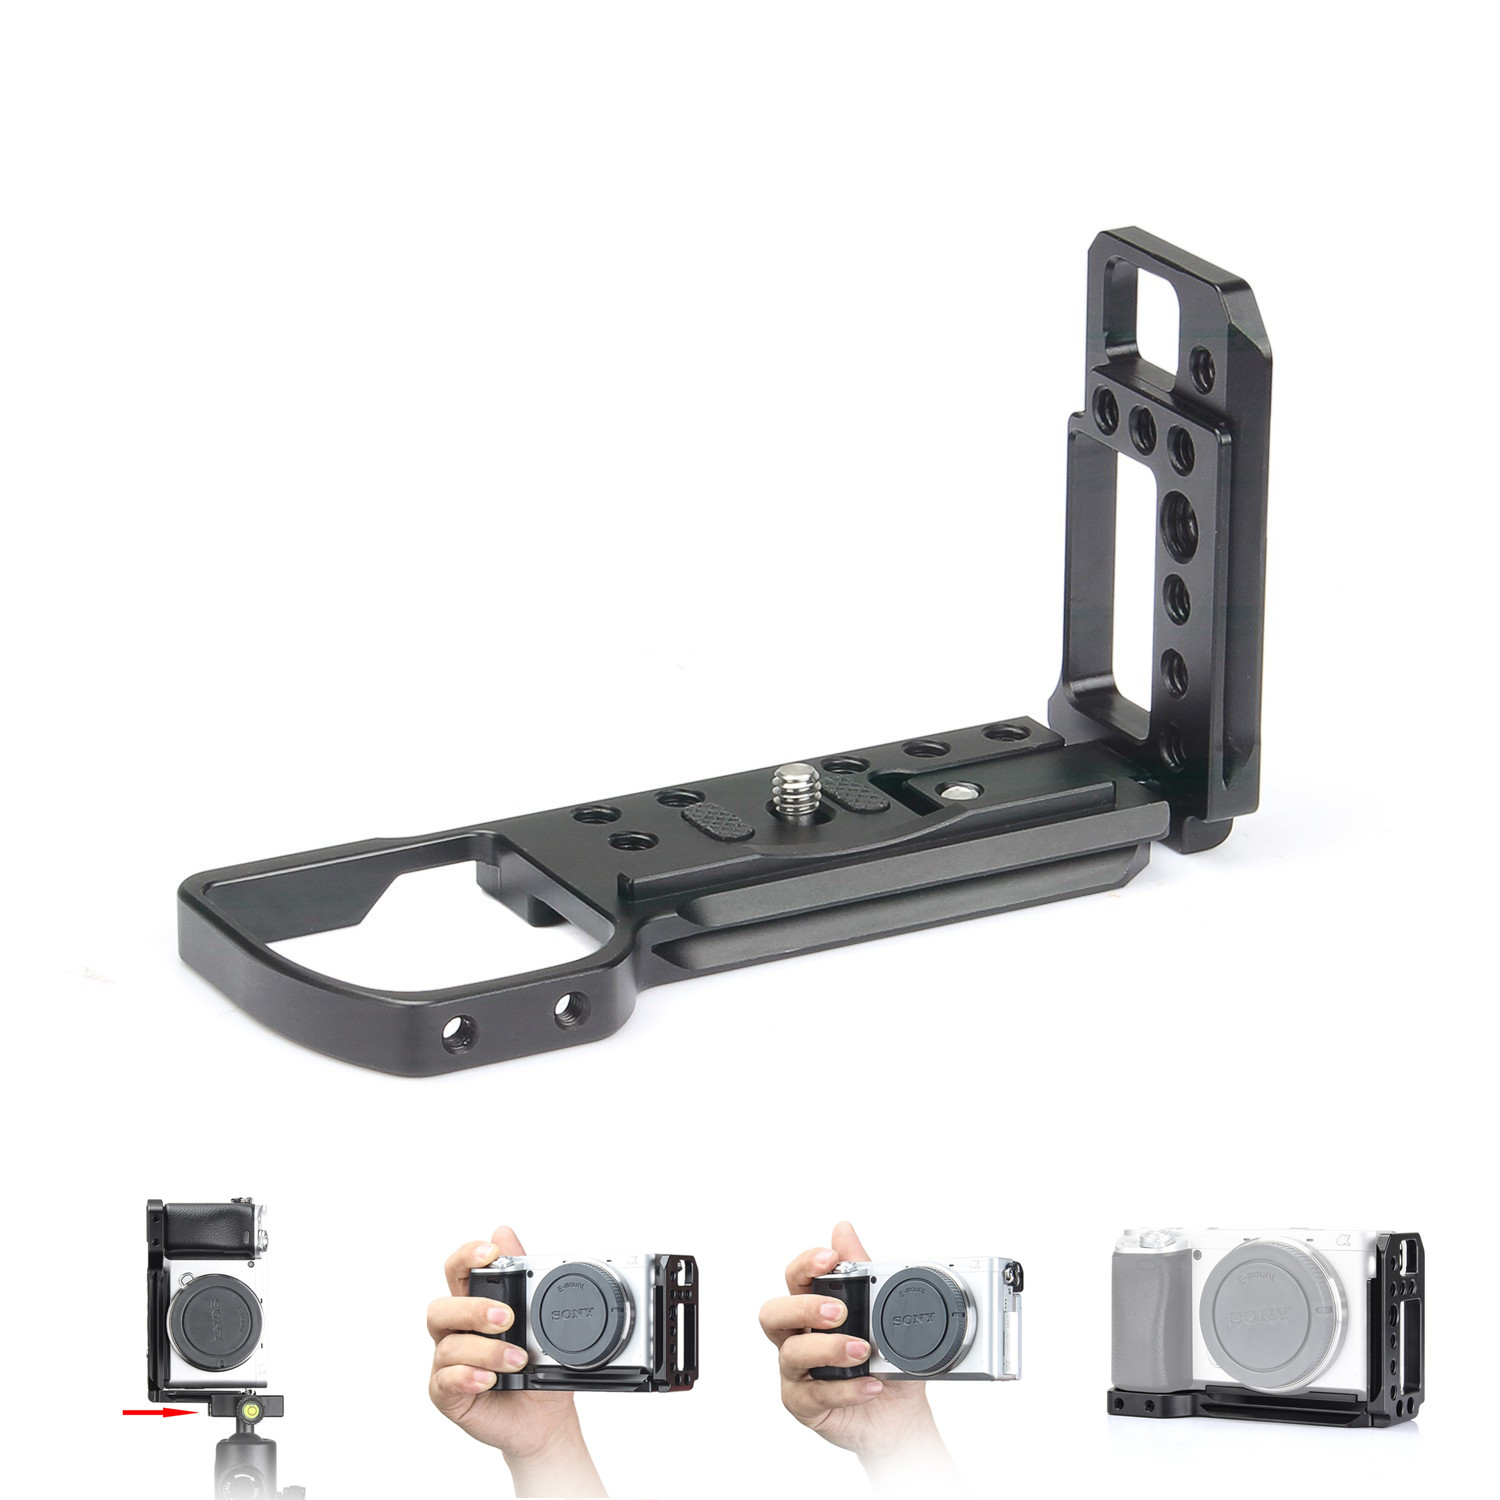 EachRig L-Bracket camera cage for Sony a6400, a6000, Arca-Type compatible dovetail plate free shiping drop shipping